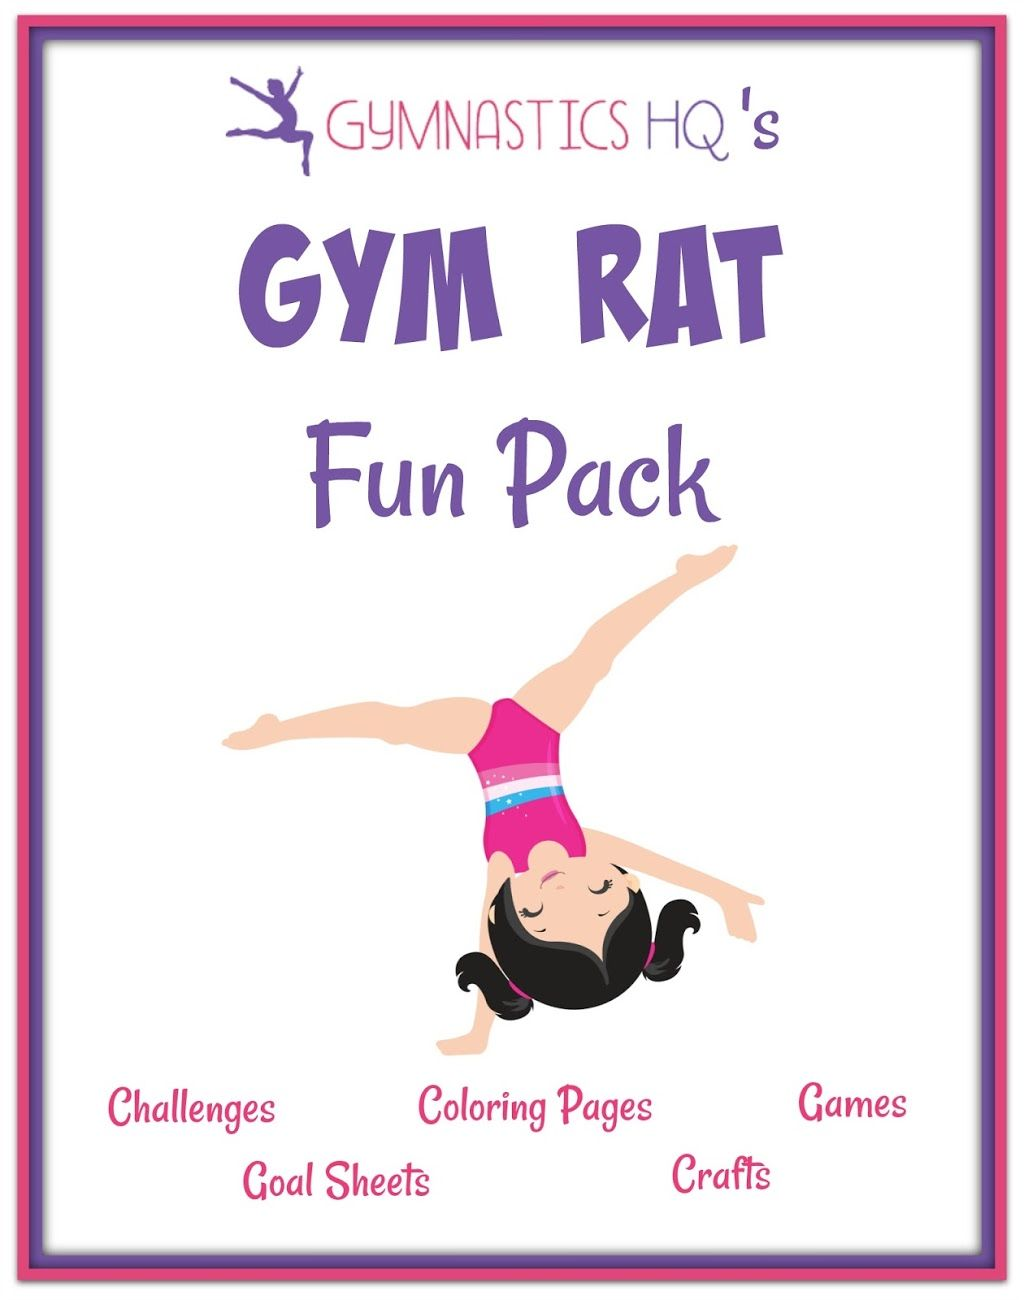 Gymnastics fun pack